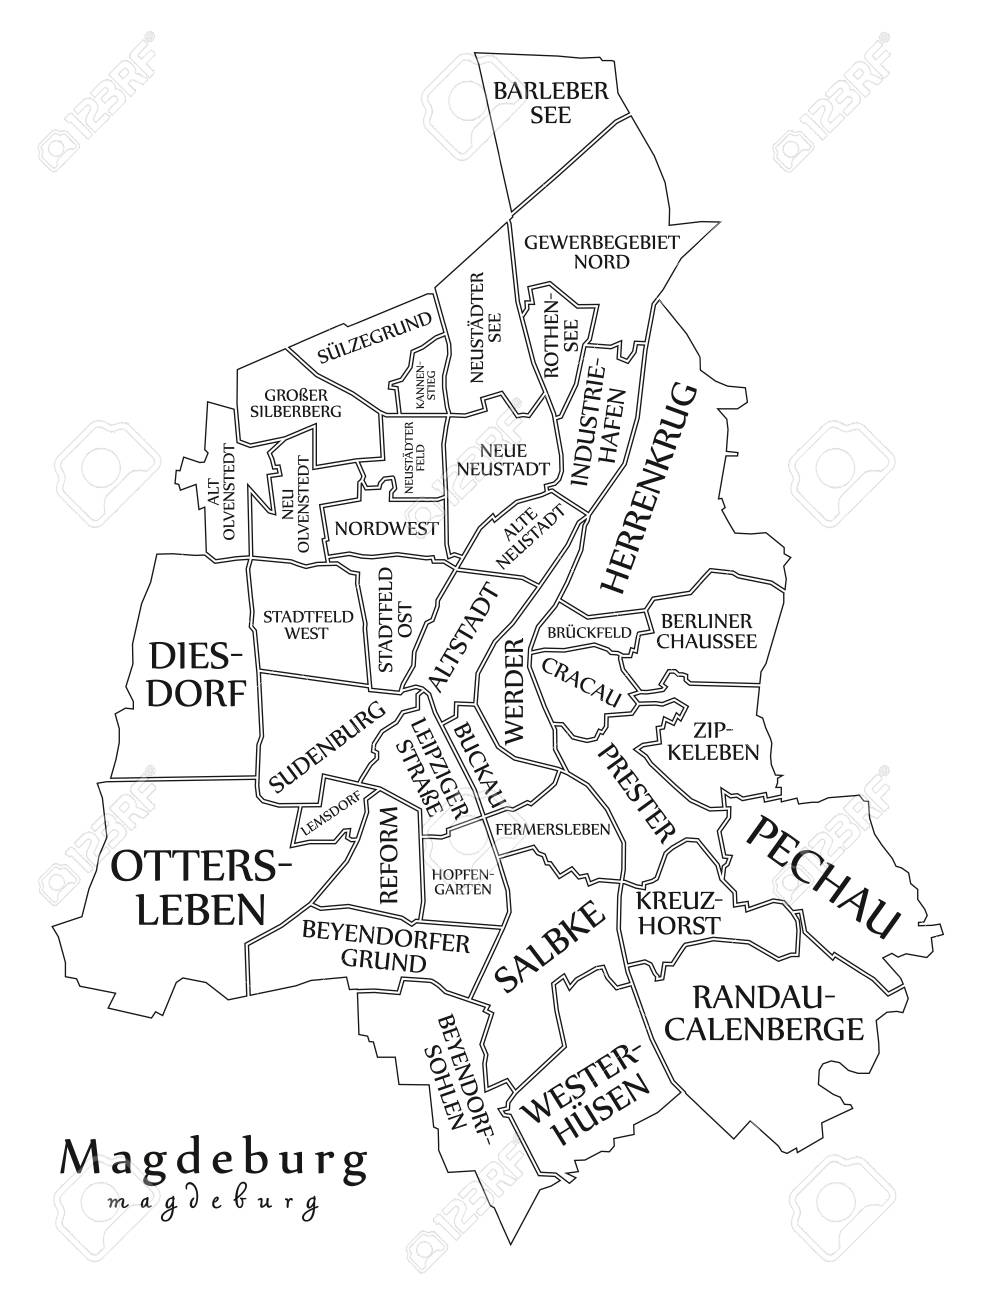 Modern City Map Magdeburg City Of Germany With Boroughs And